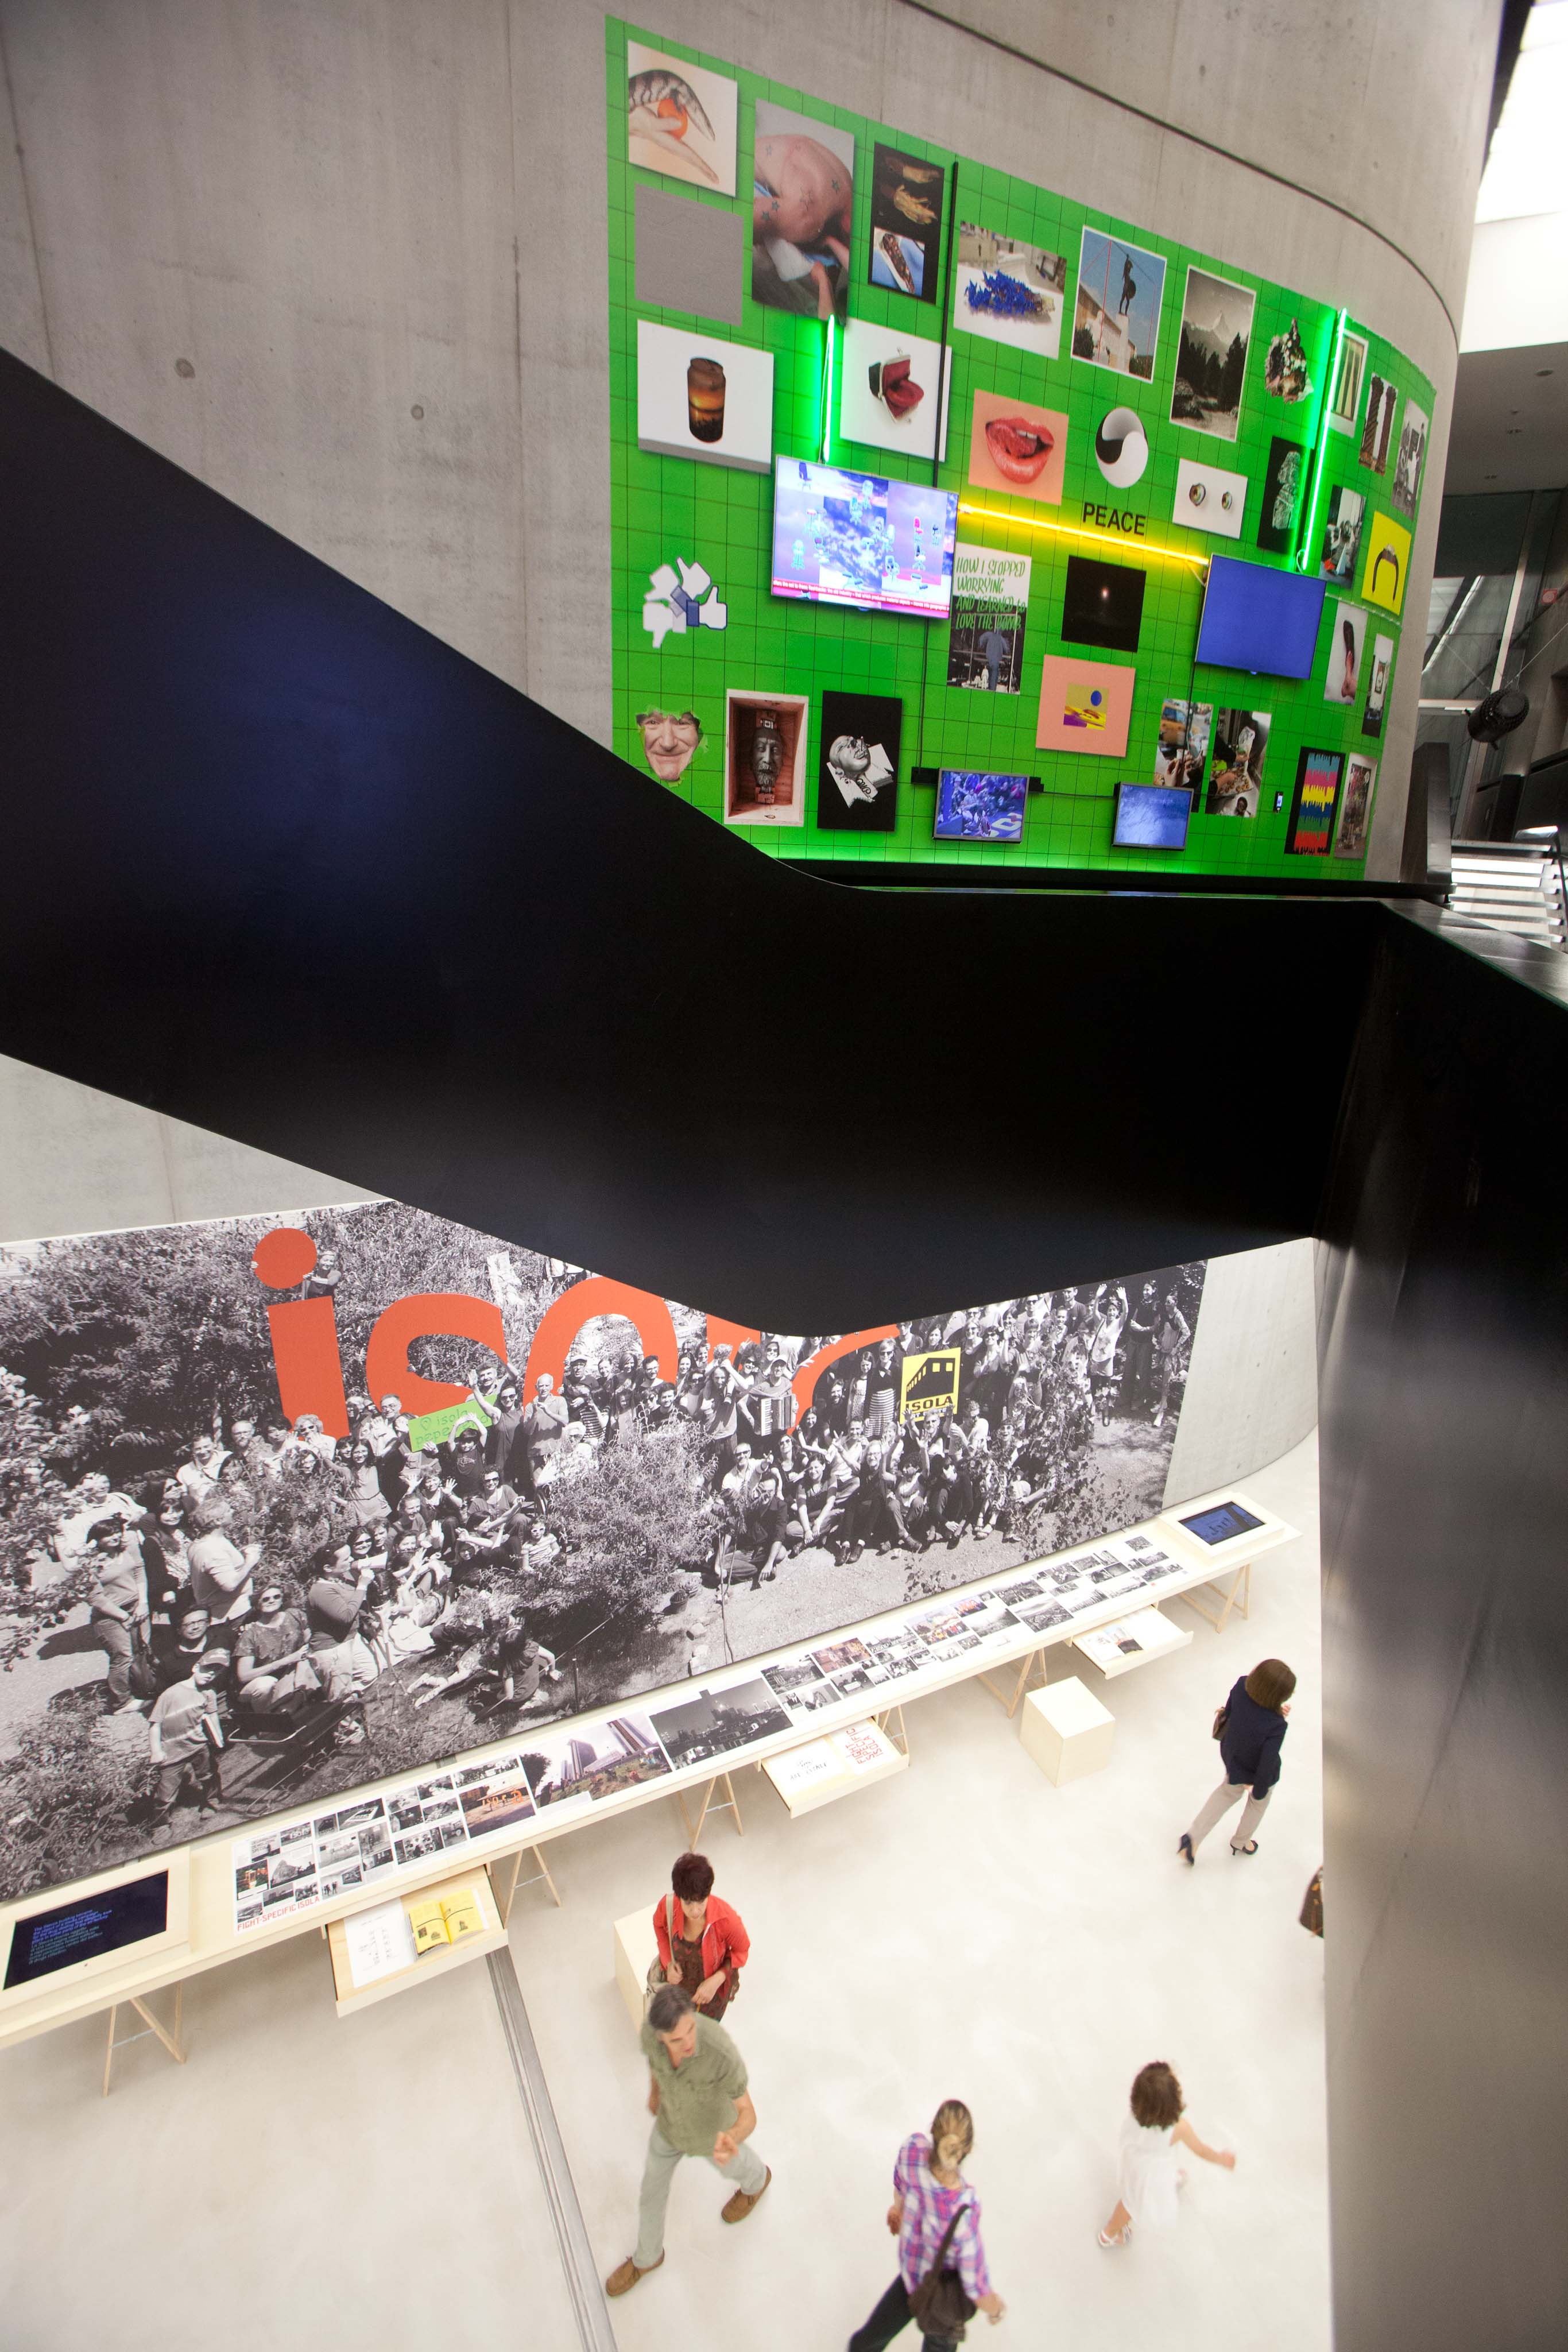 MAXXI_THE_INDEPENDENT_phMusacchioIanniello_8003